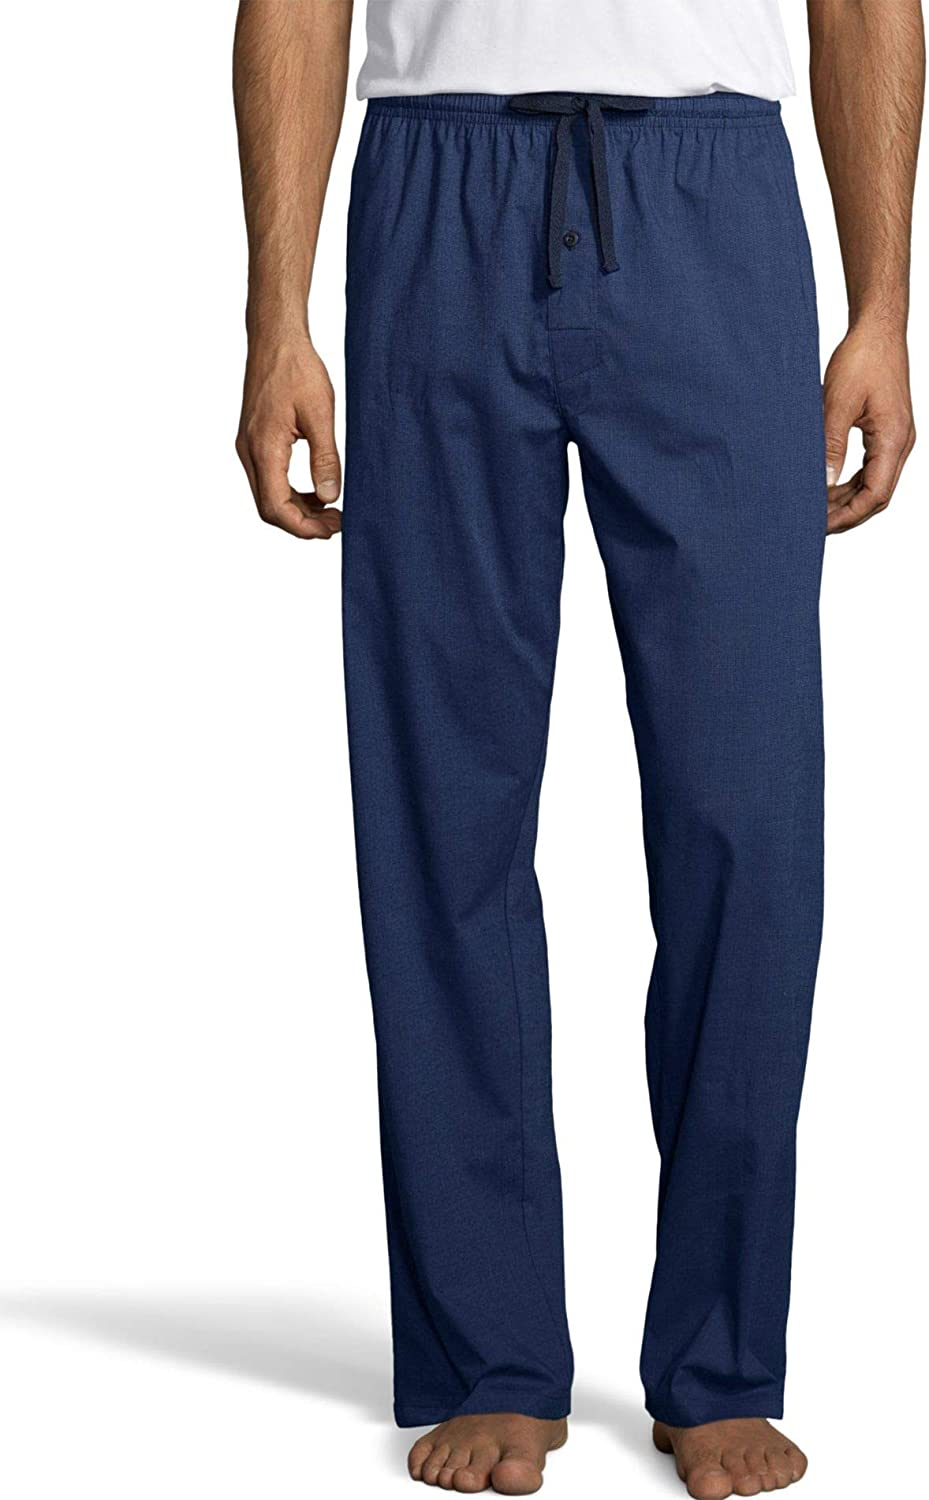 Hanes Mens Woven Stretch Plaid Pant (02000S) -Denim -M